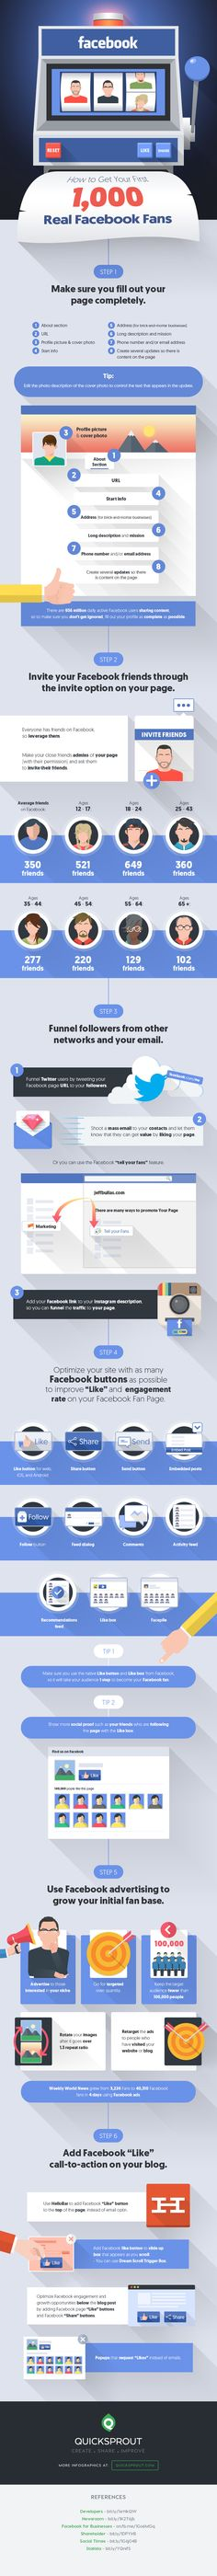 Infografik – How to Get Your First 1000 Real Facebook Fans by QuickSprout